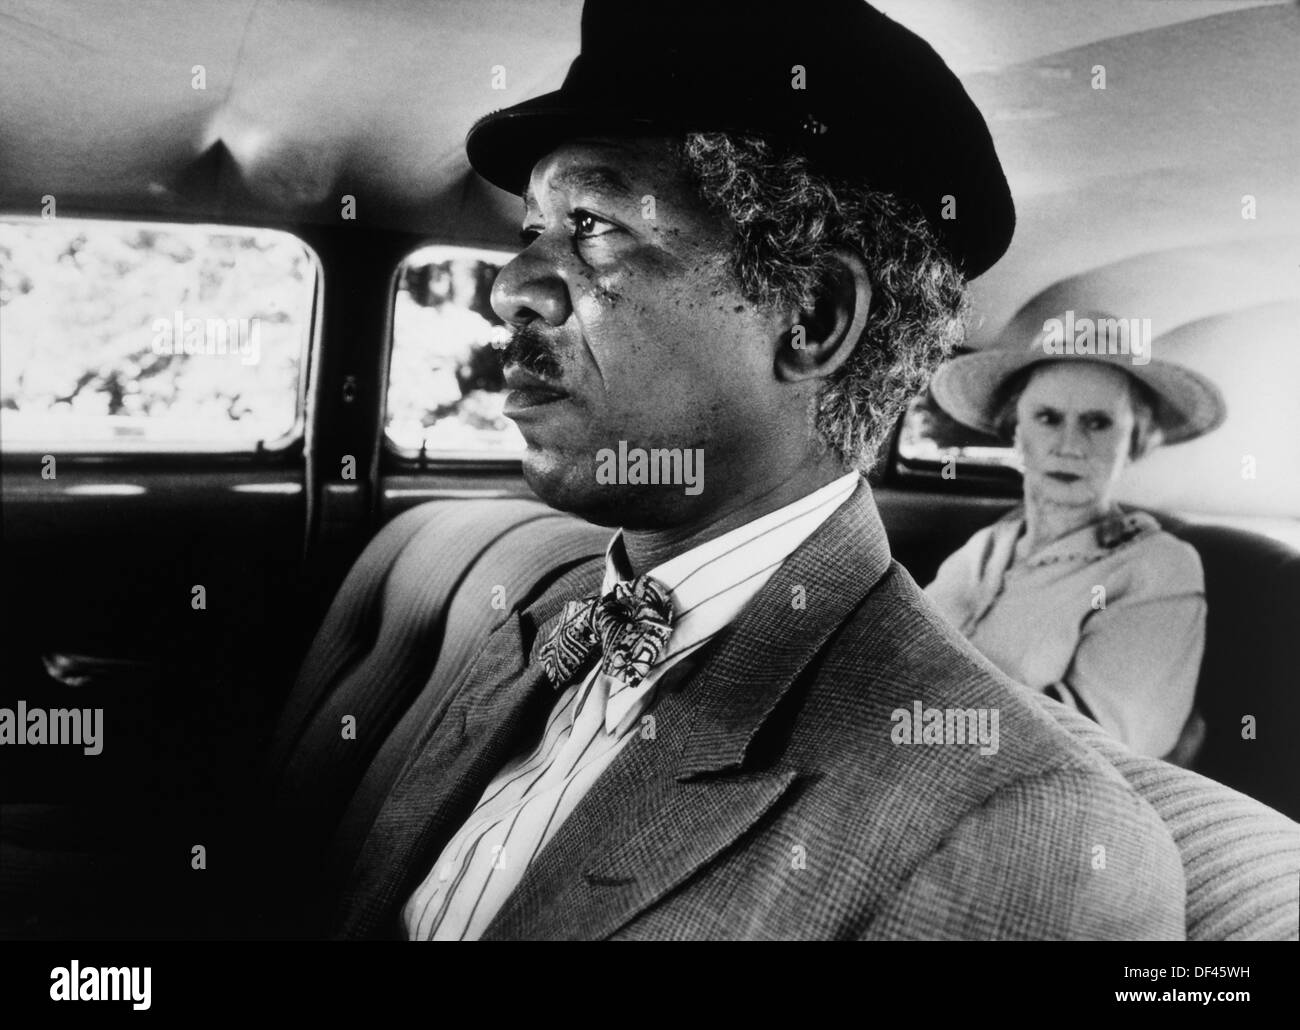 Morgan Freeman and Jessica Tandy, On-Set of the Film, 'Driving Miss Daisy', 1989 - Stock Image